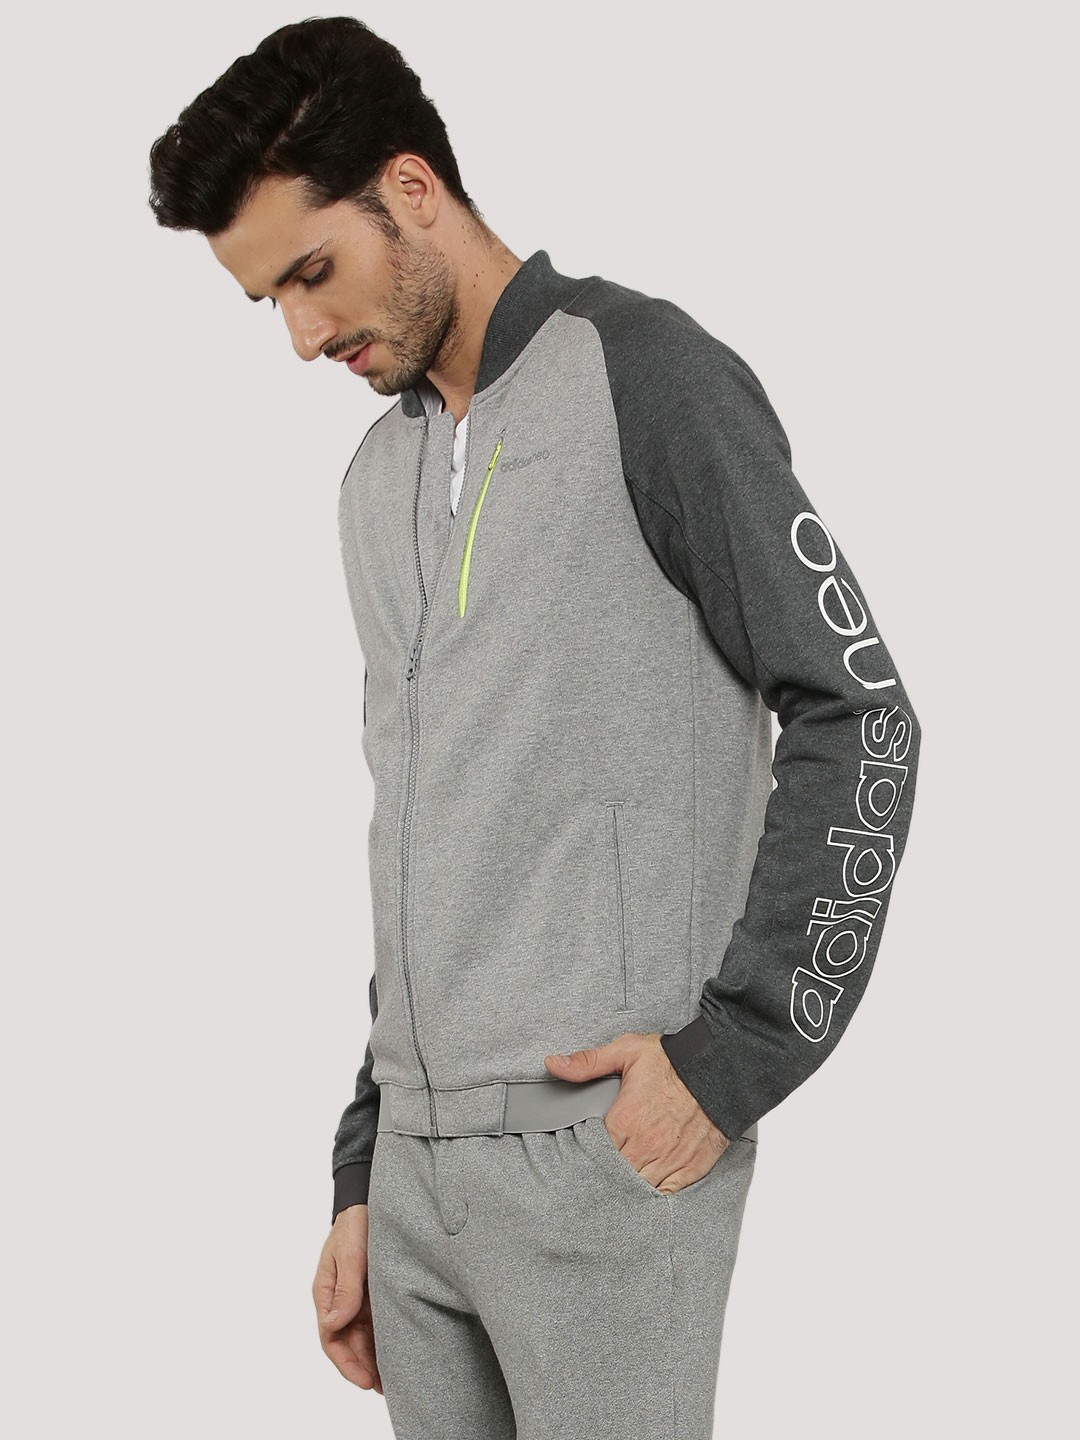 Buy ADIDAS NEO Jacket With Zipper Pocket And Sleeves Logo For Men - Menu0026#39;s Multi Jackets Online ...